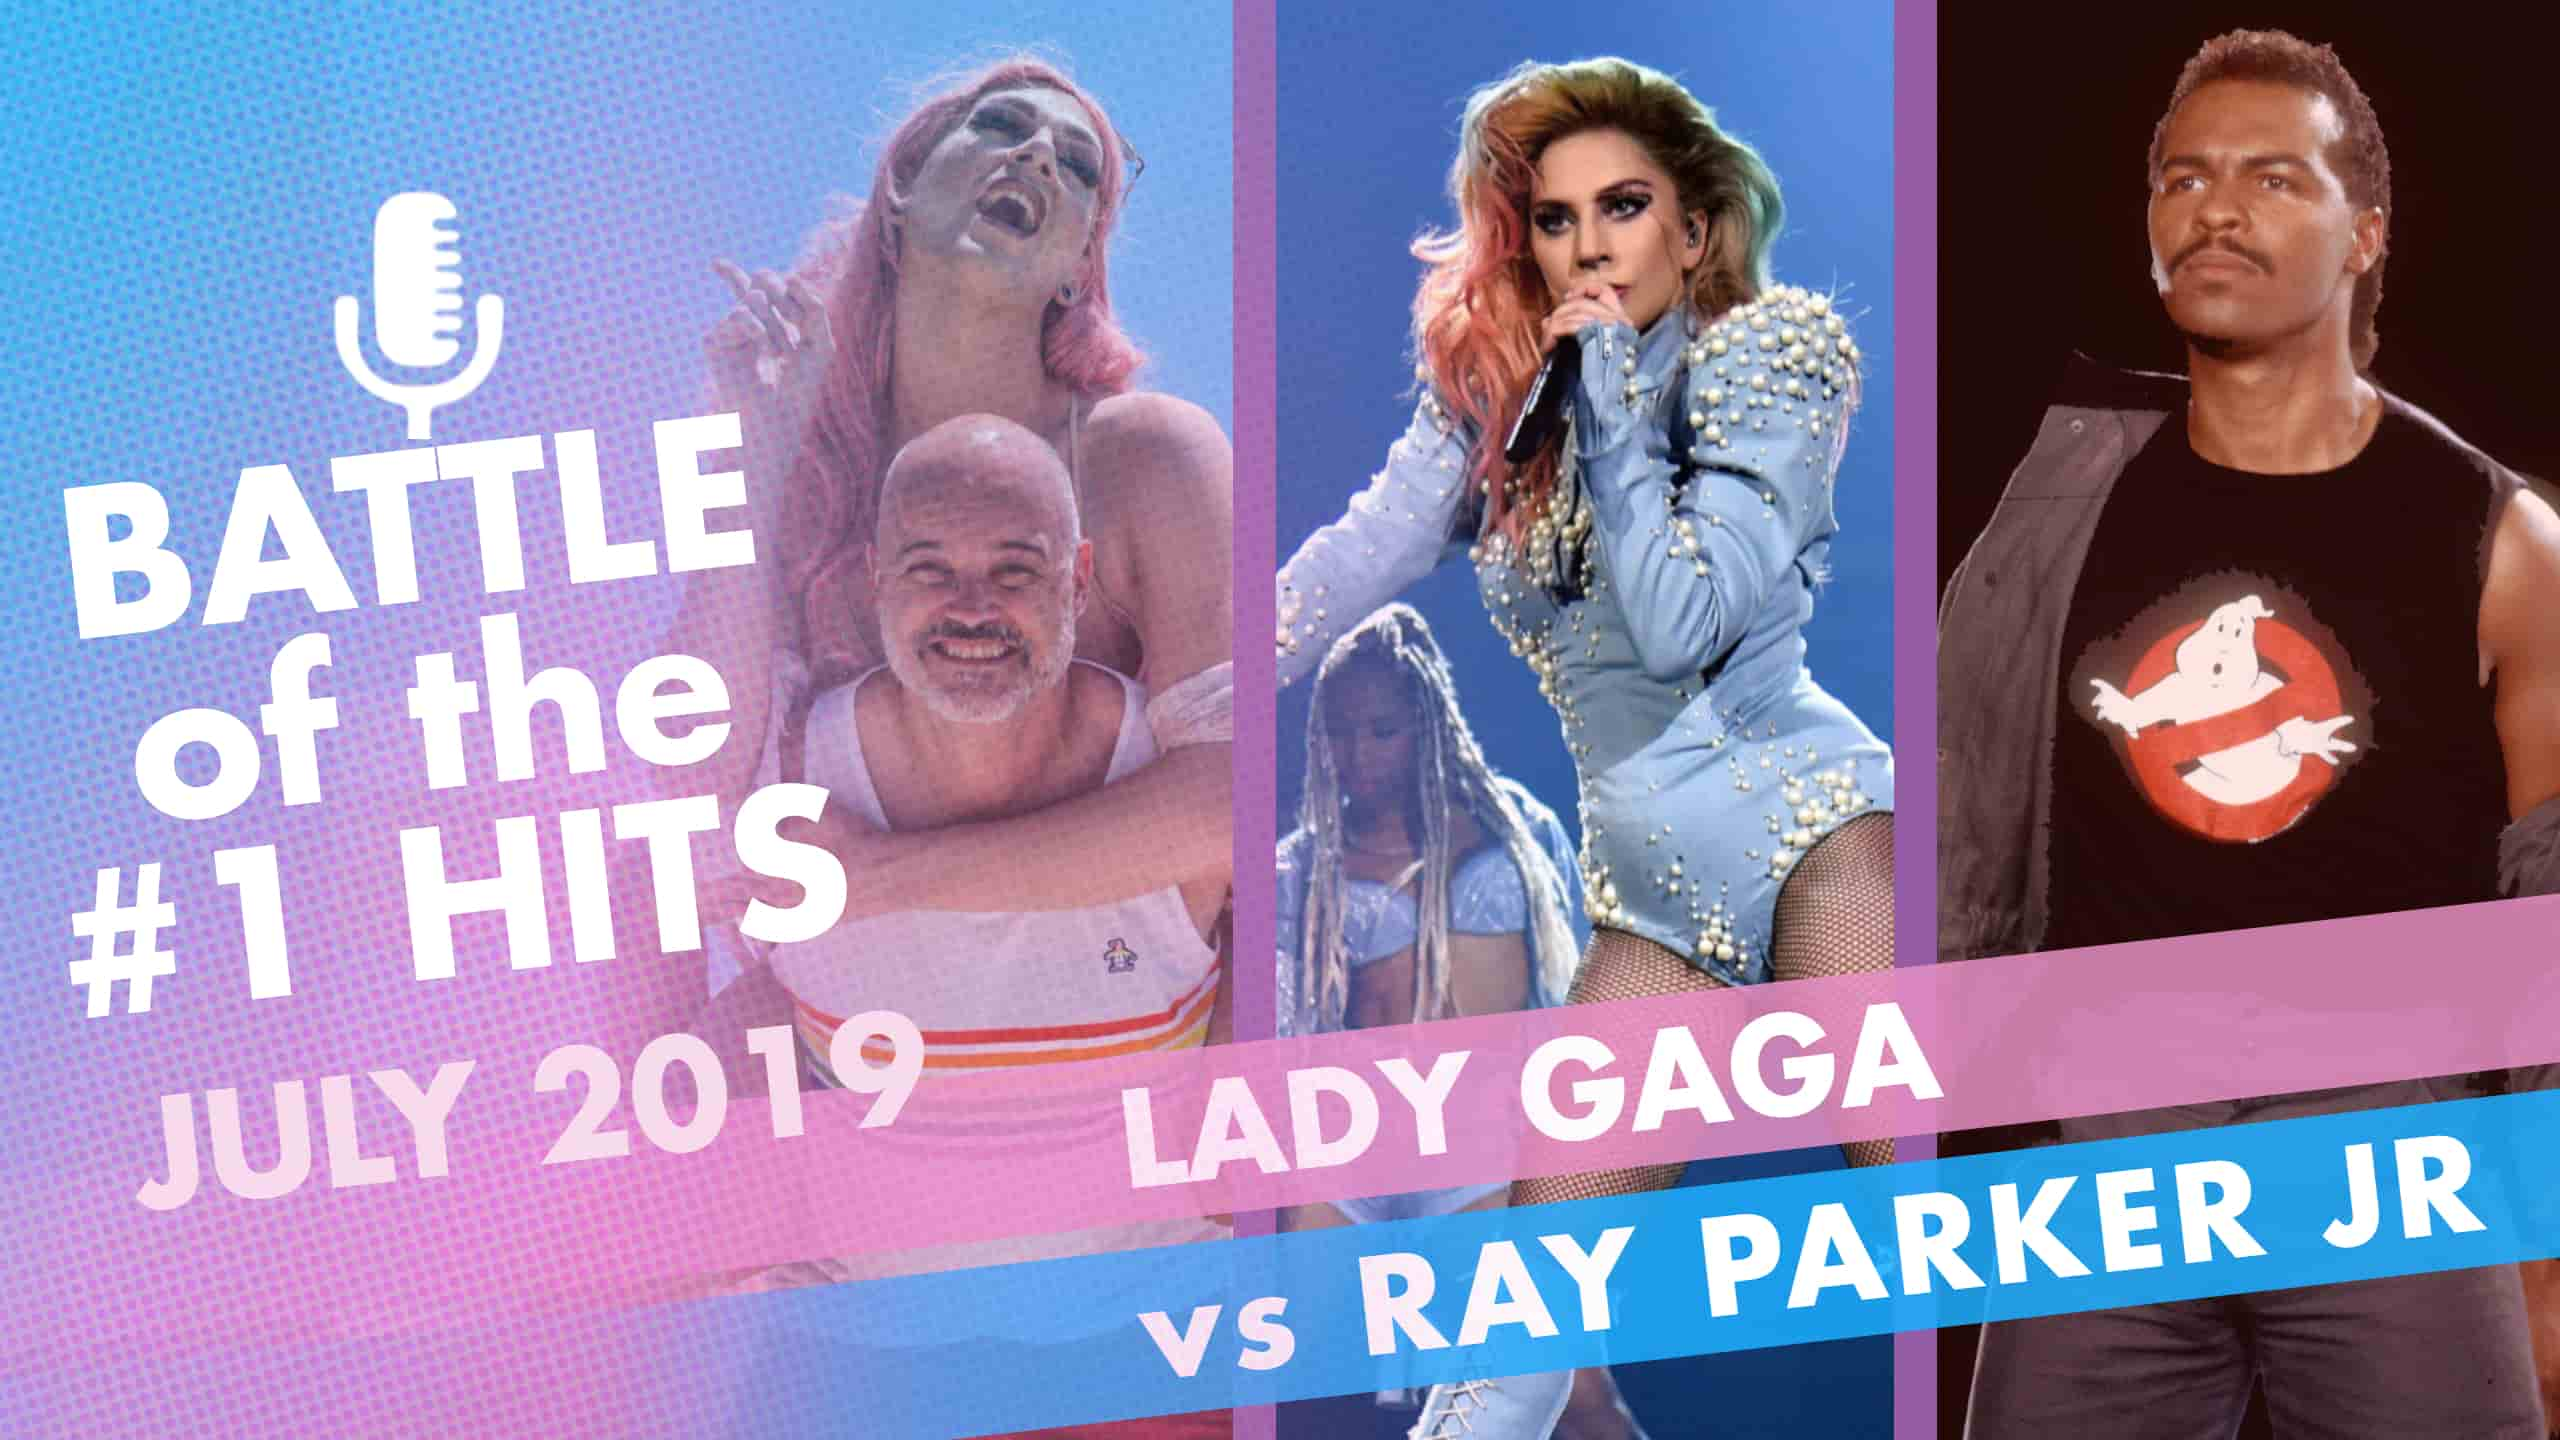 It's Lady Gaga vs Ray Parker jr. on Battle of the number one hits summer edition!